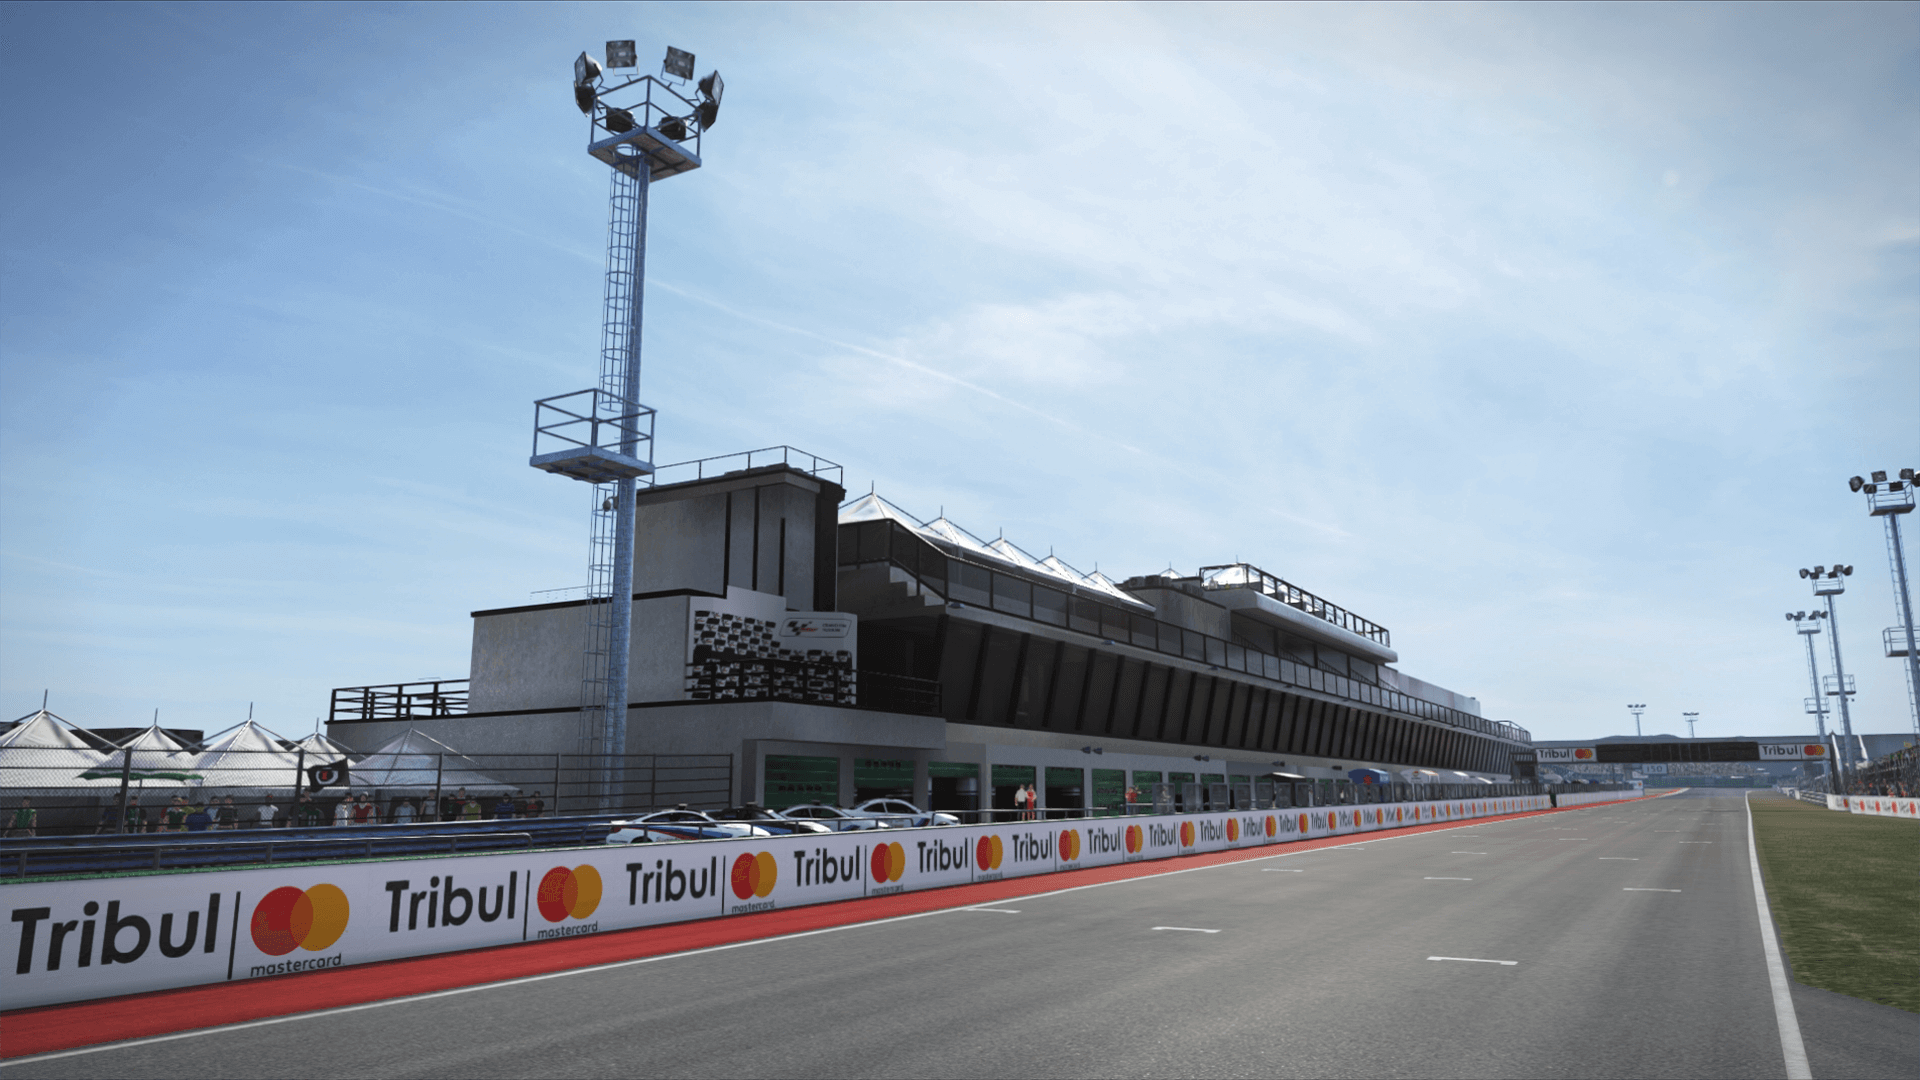 Ride at the Riviera de Rímini – your chance to take Ducati to victory in Misano